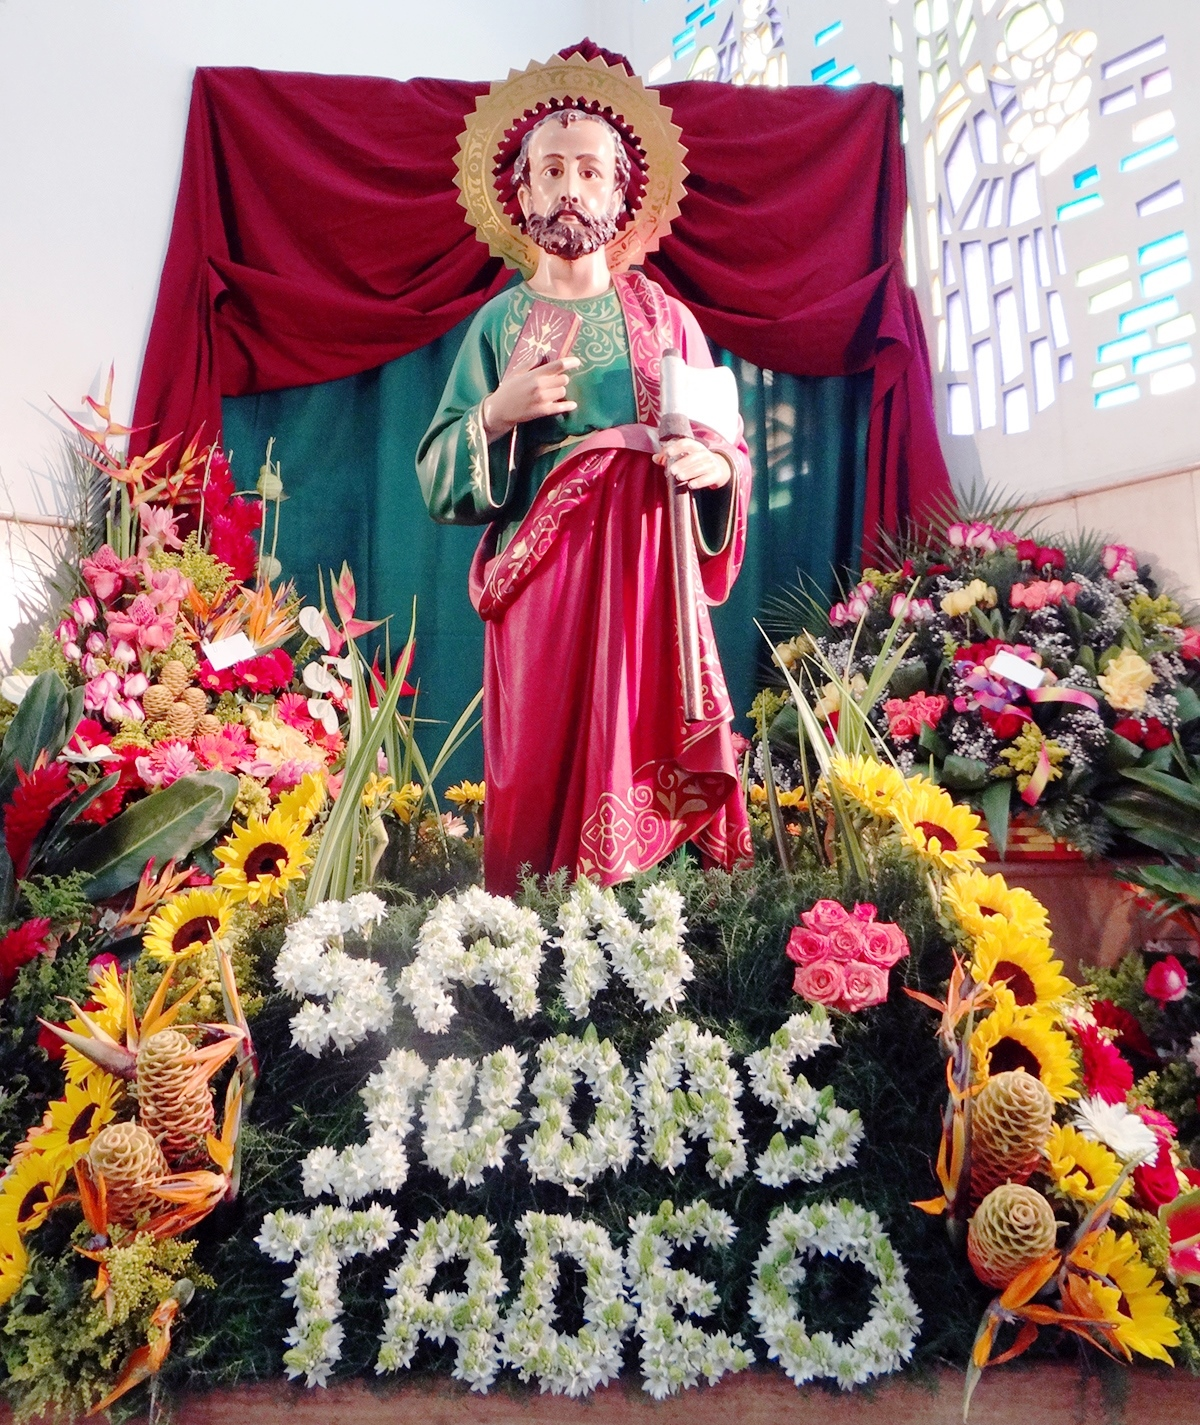 Judas Tadeo